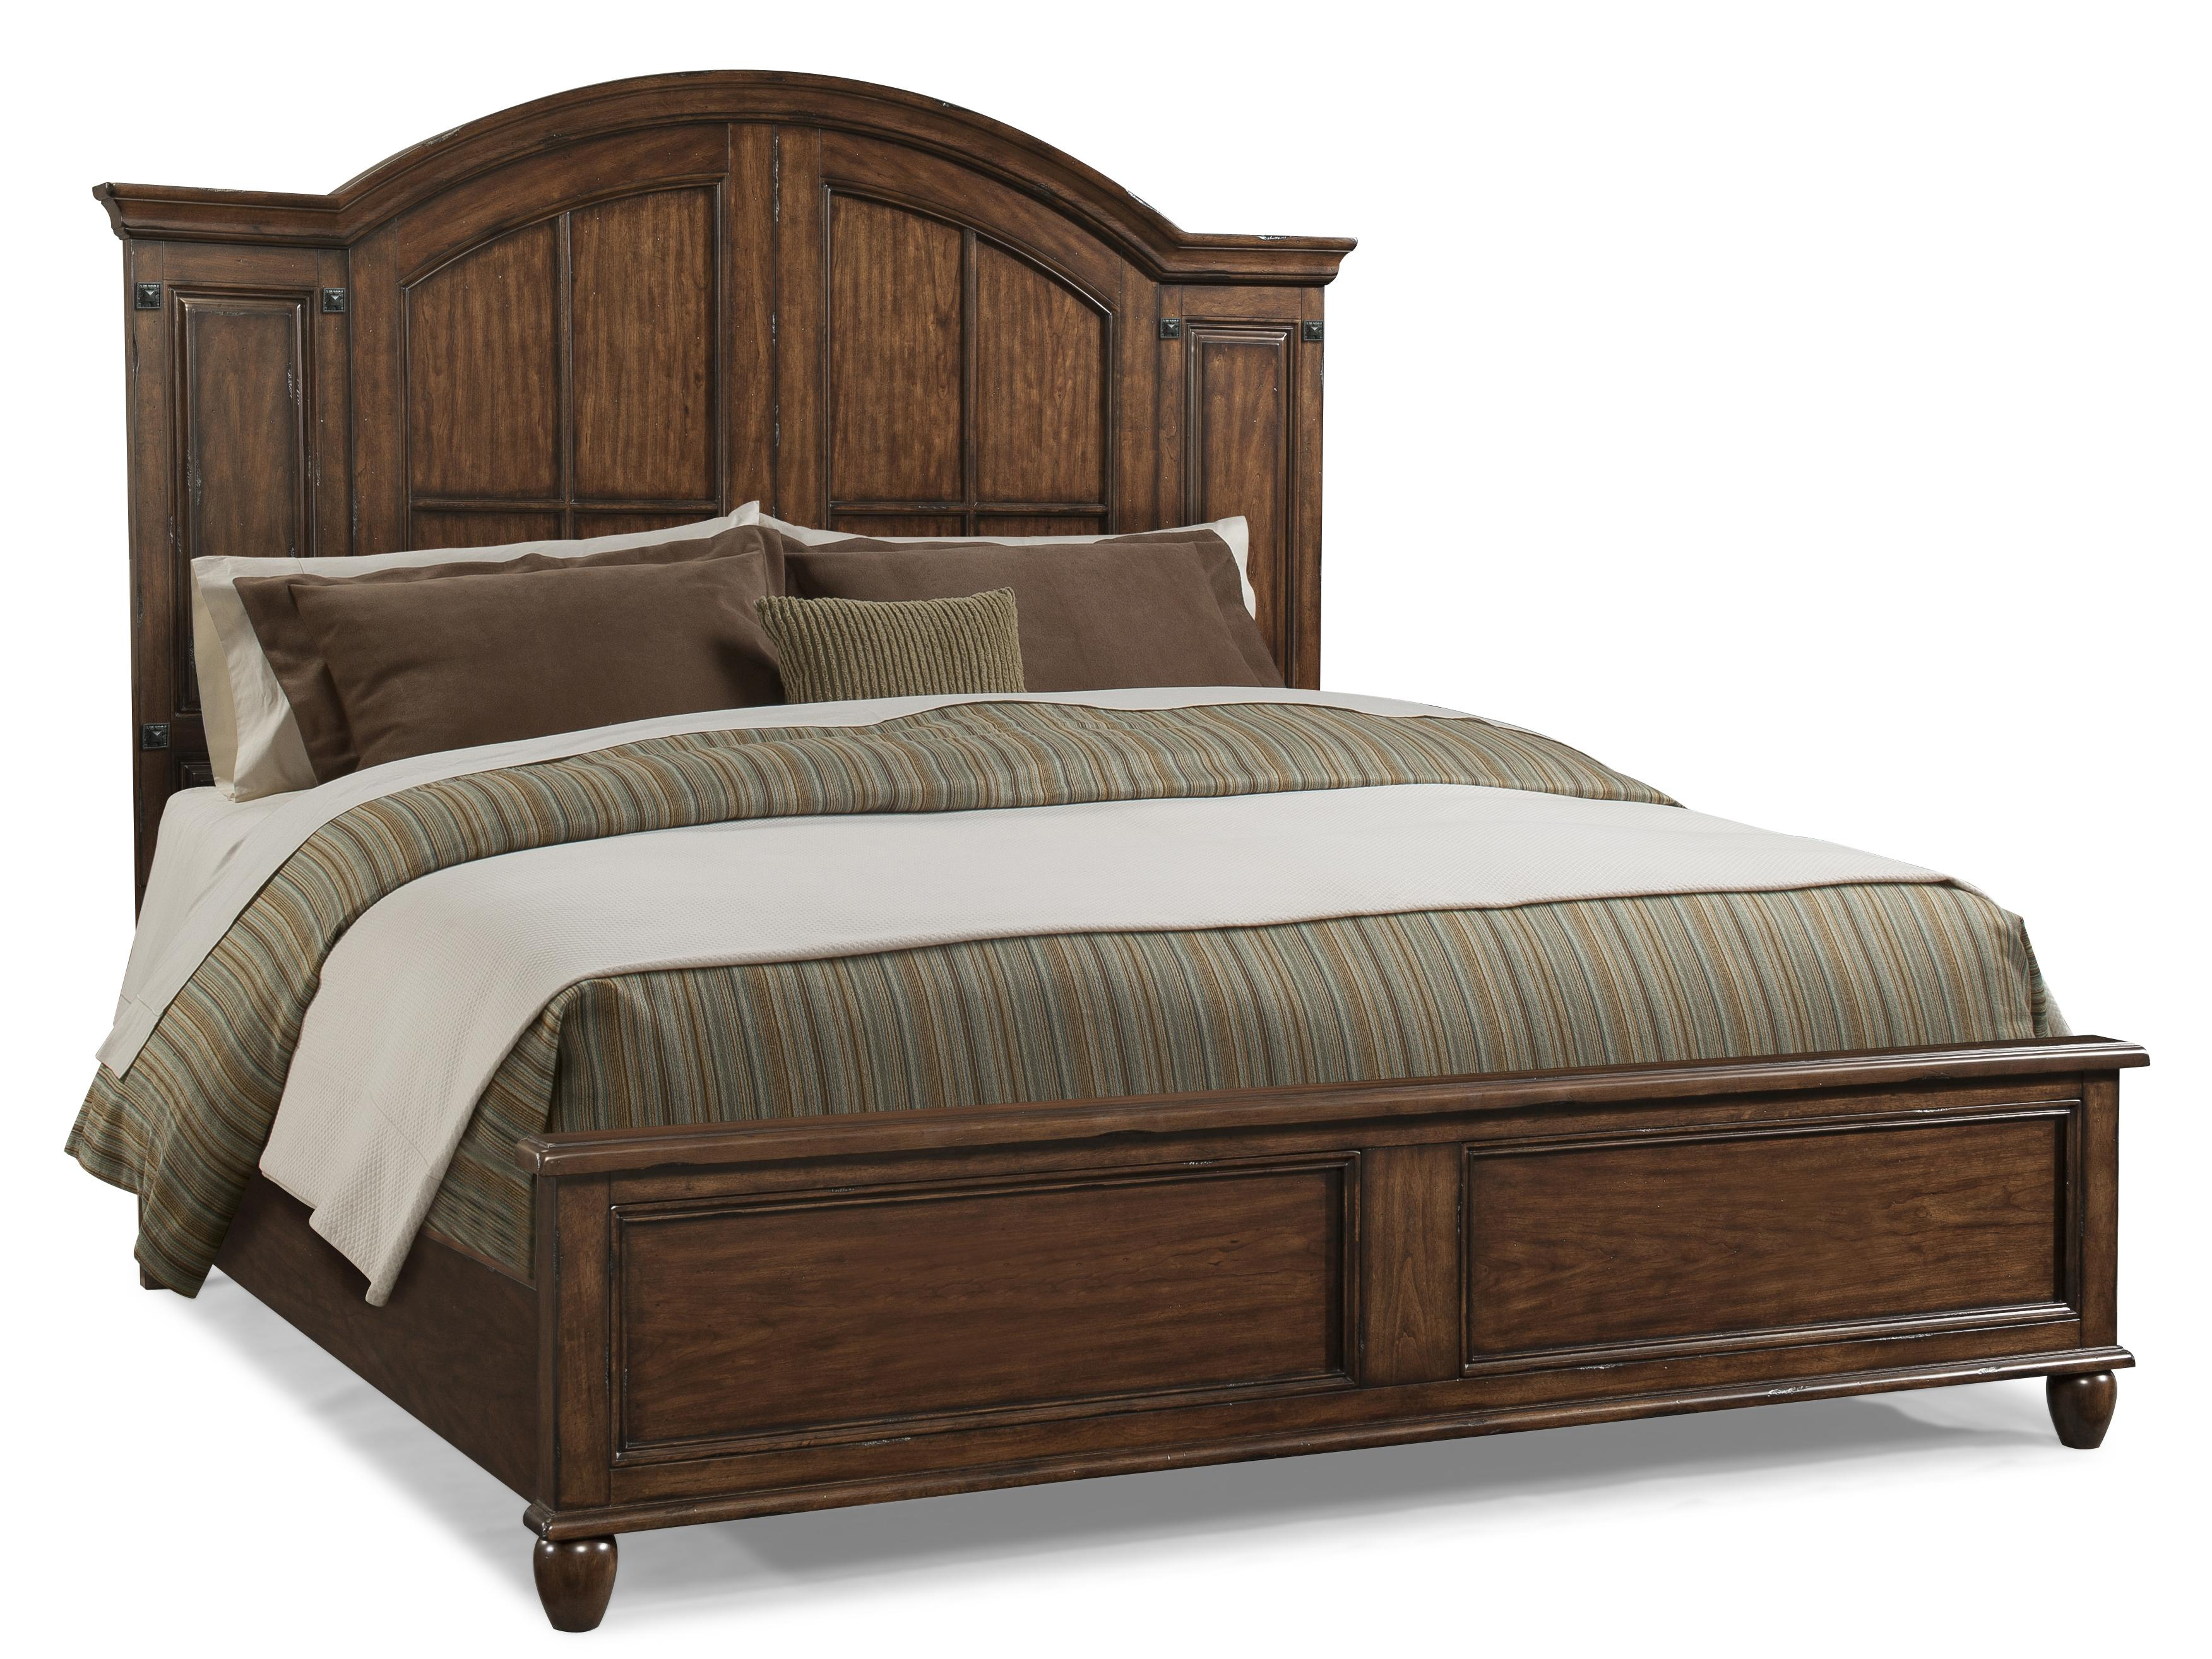 Morris Home Furnishings Livingston Livingston Queen Panel Bed - Item Number: 427-050 QBED